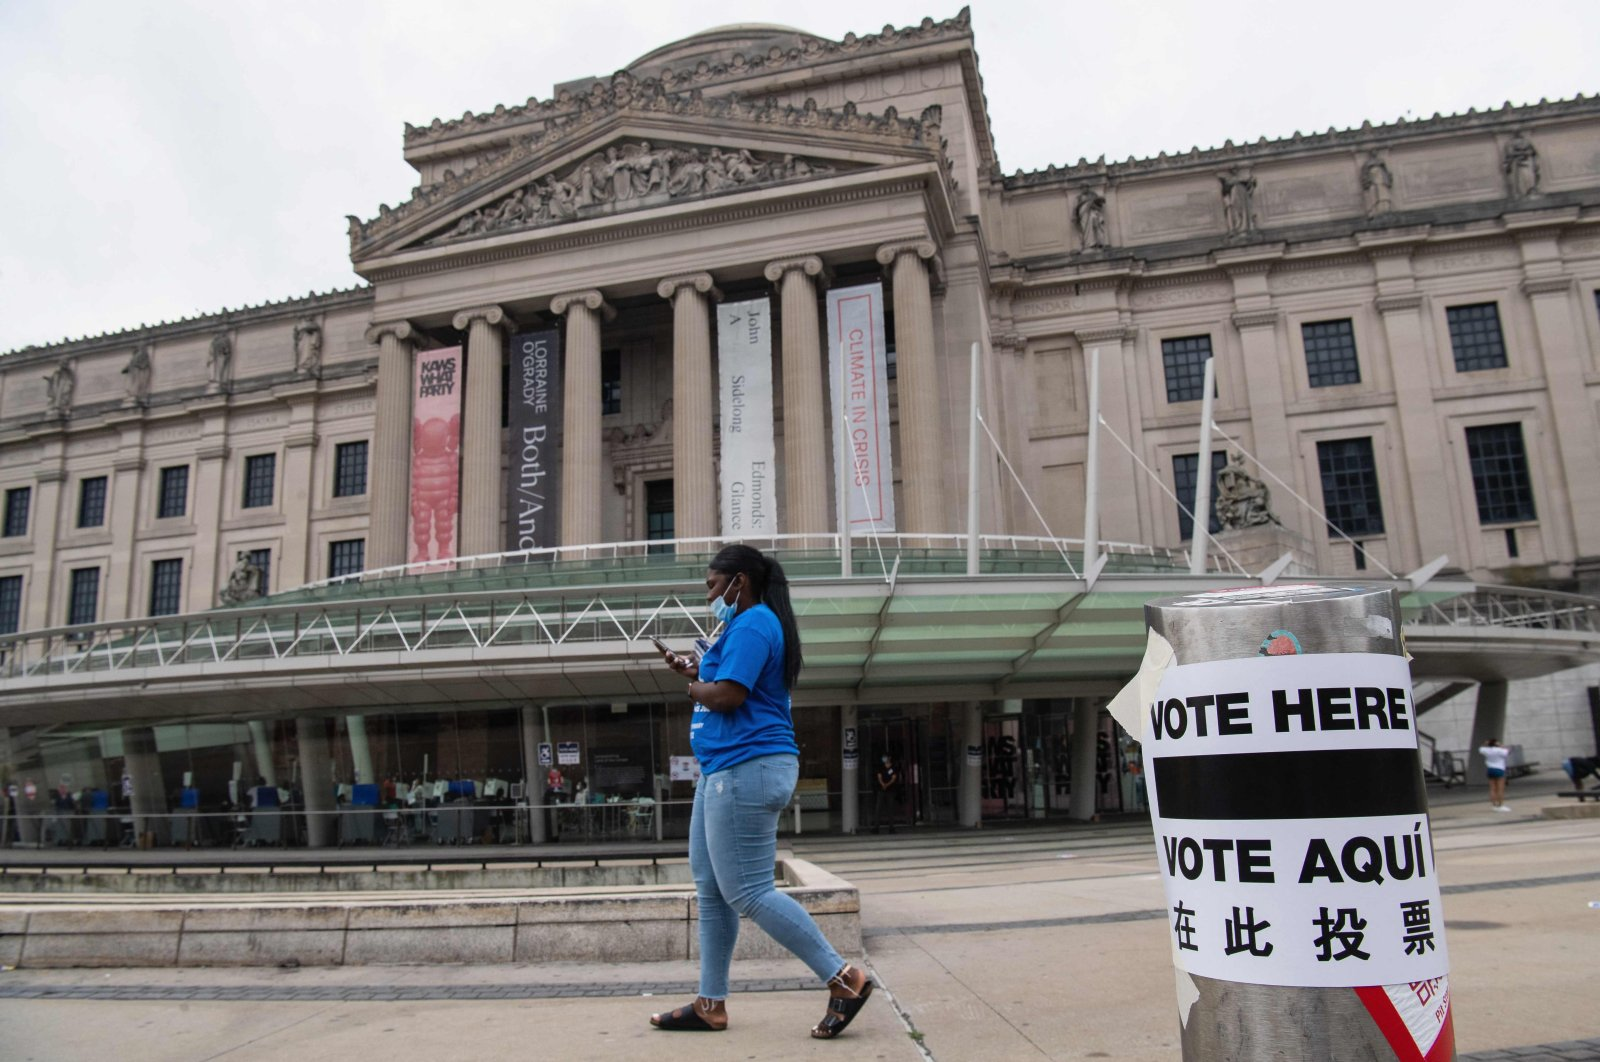 A woman walks past the Brooklyn Museum polling station as residents vote in the Democratic mayoral primary election, New York City, United States, June 22, 2021. (AFP Photo)